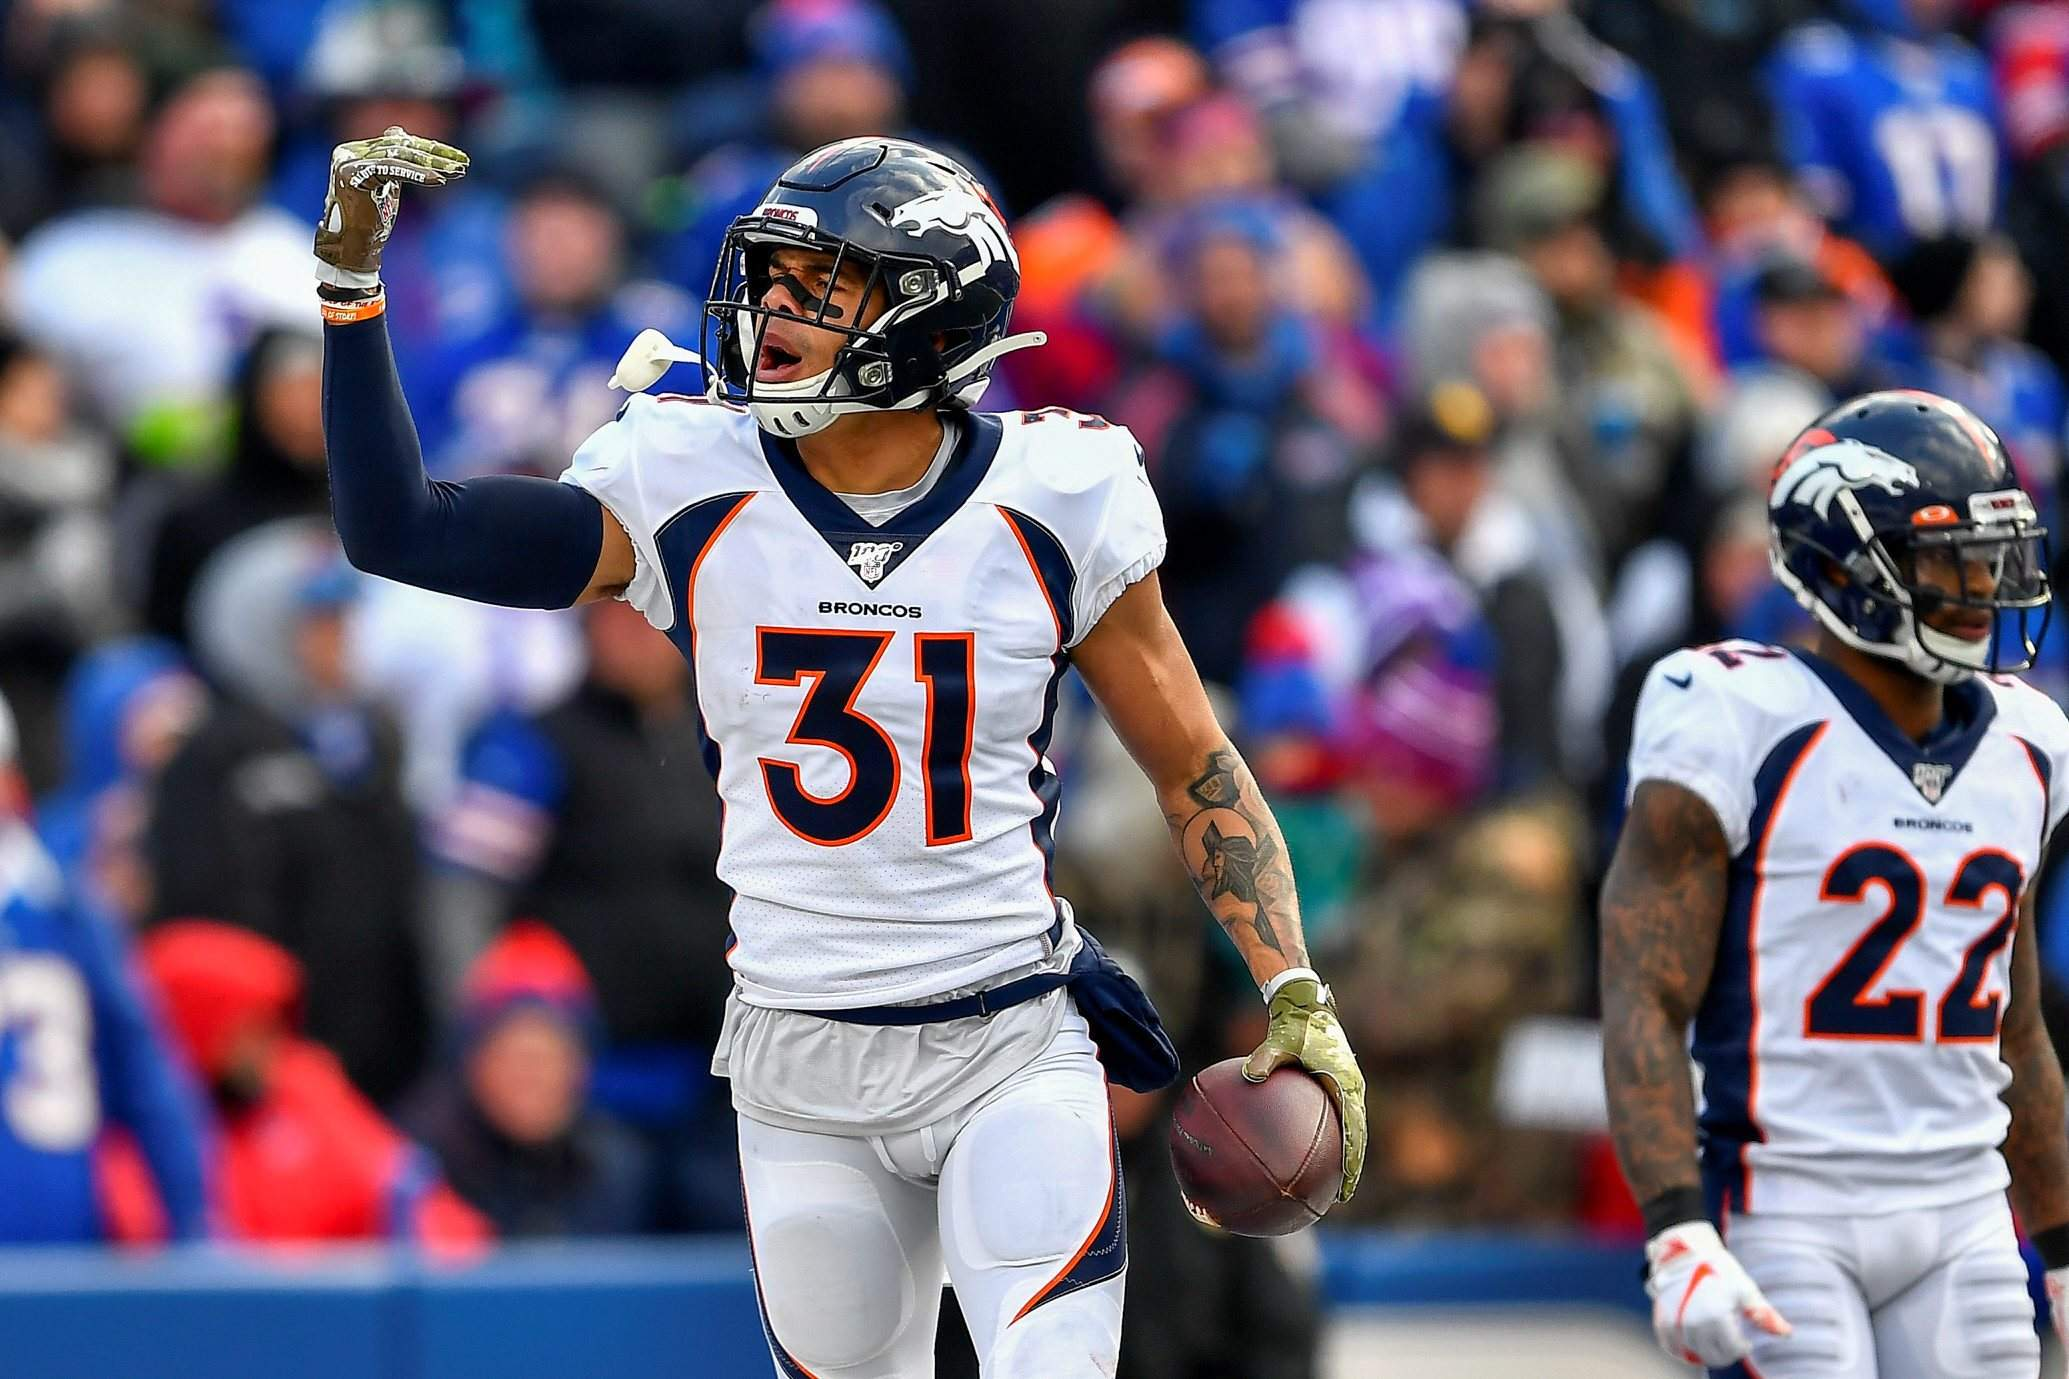 Broncos franchise tag superstar safety Justin Simmons